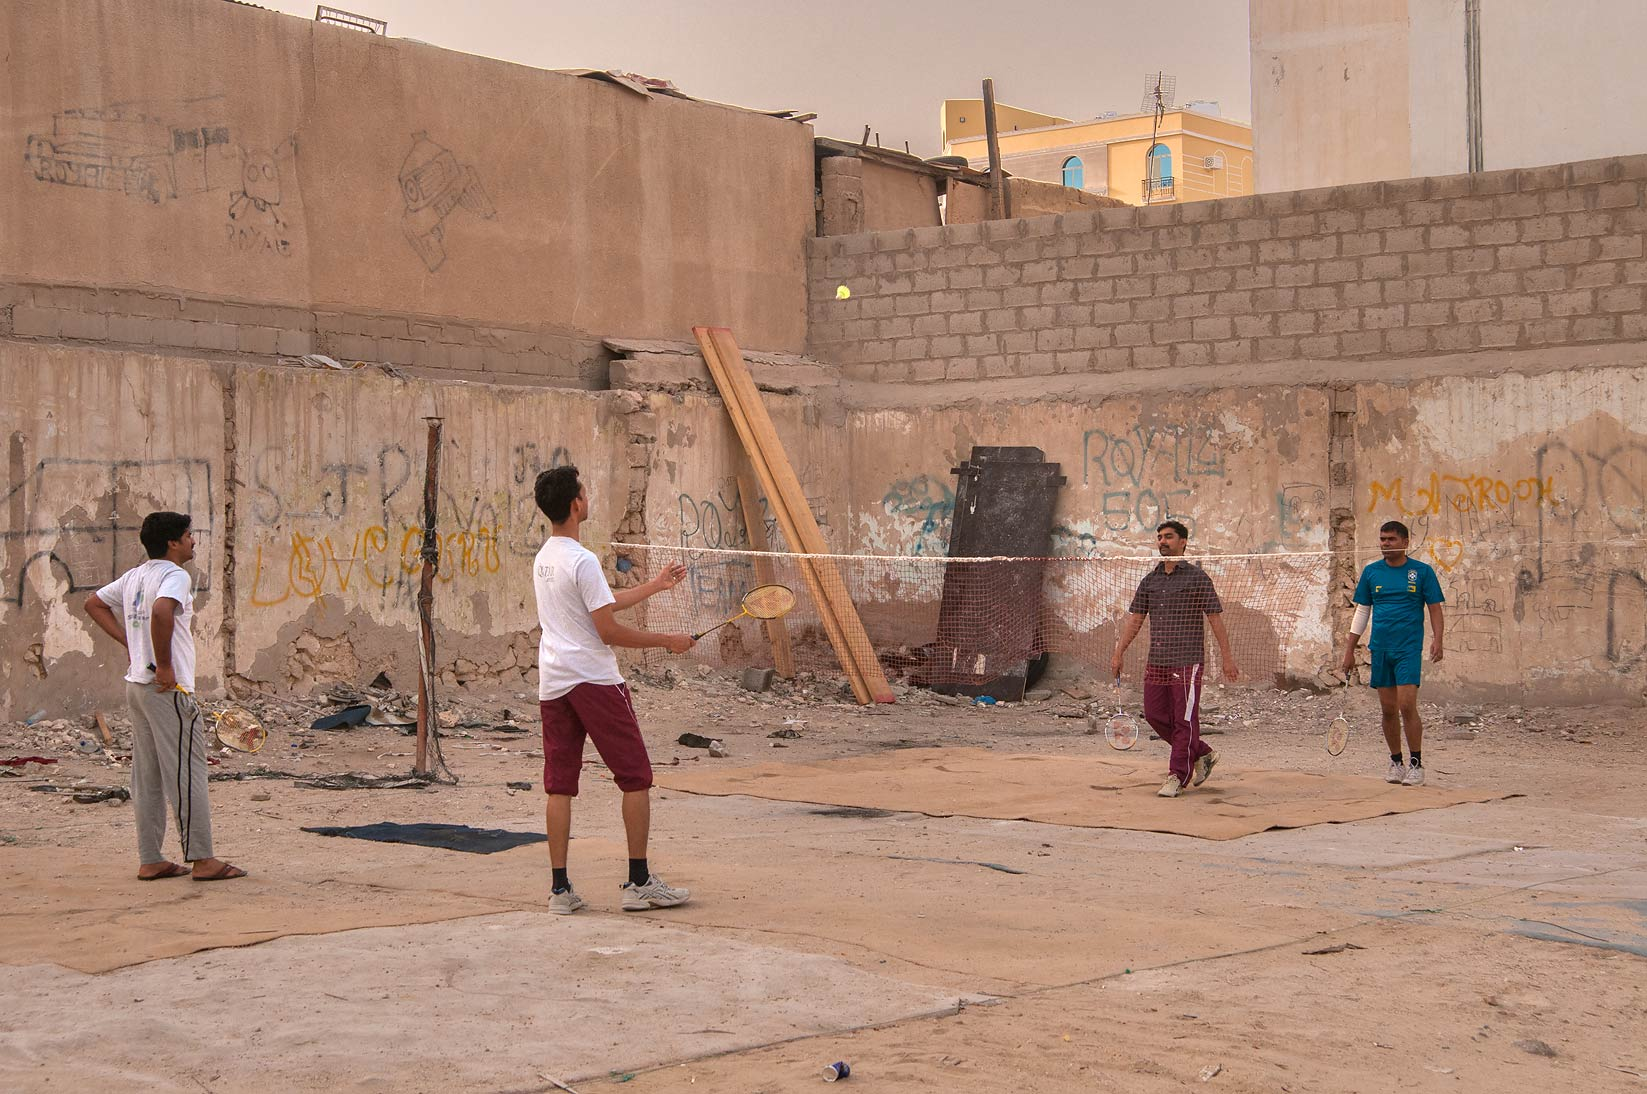 Playing badminton at Ibn Abdul Salam St., a...Al Doha Al Jadeeda area. Doha, Qatar